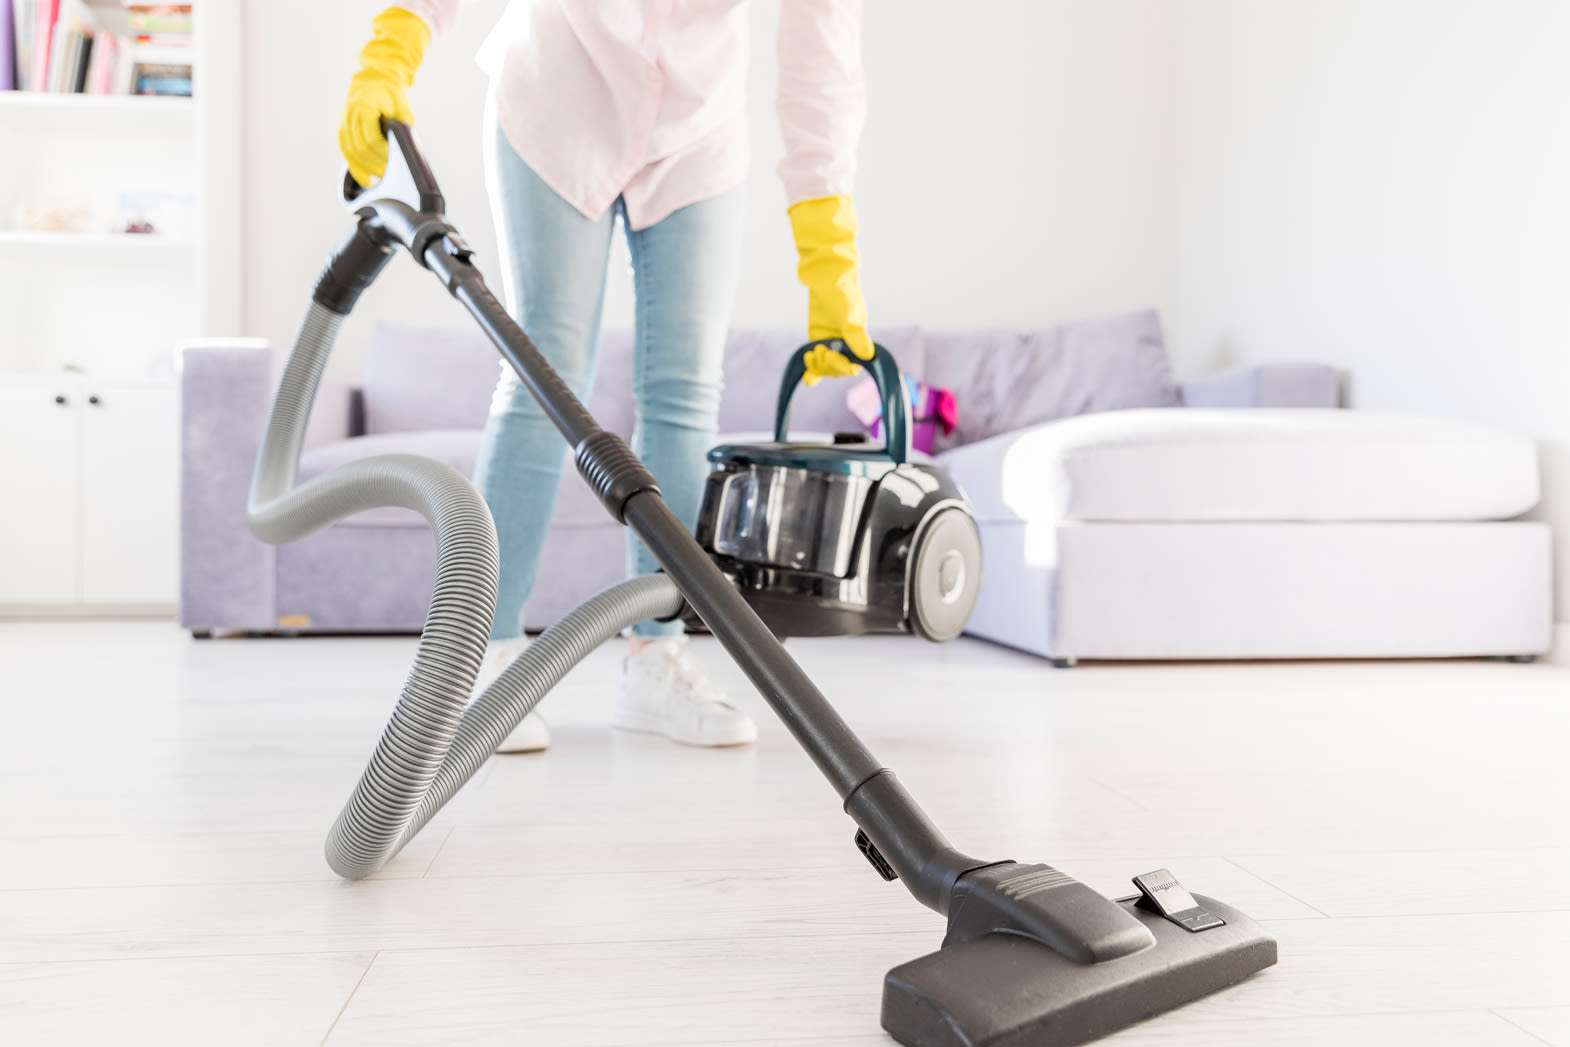 Home Vacuum Cleaner Buying Guide